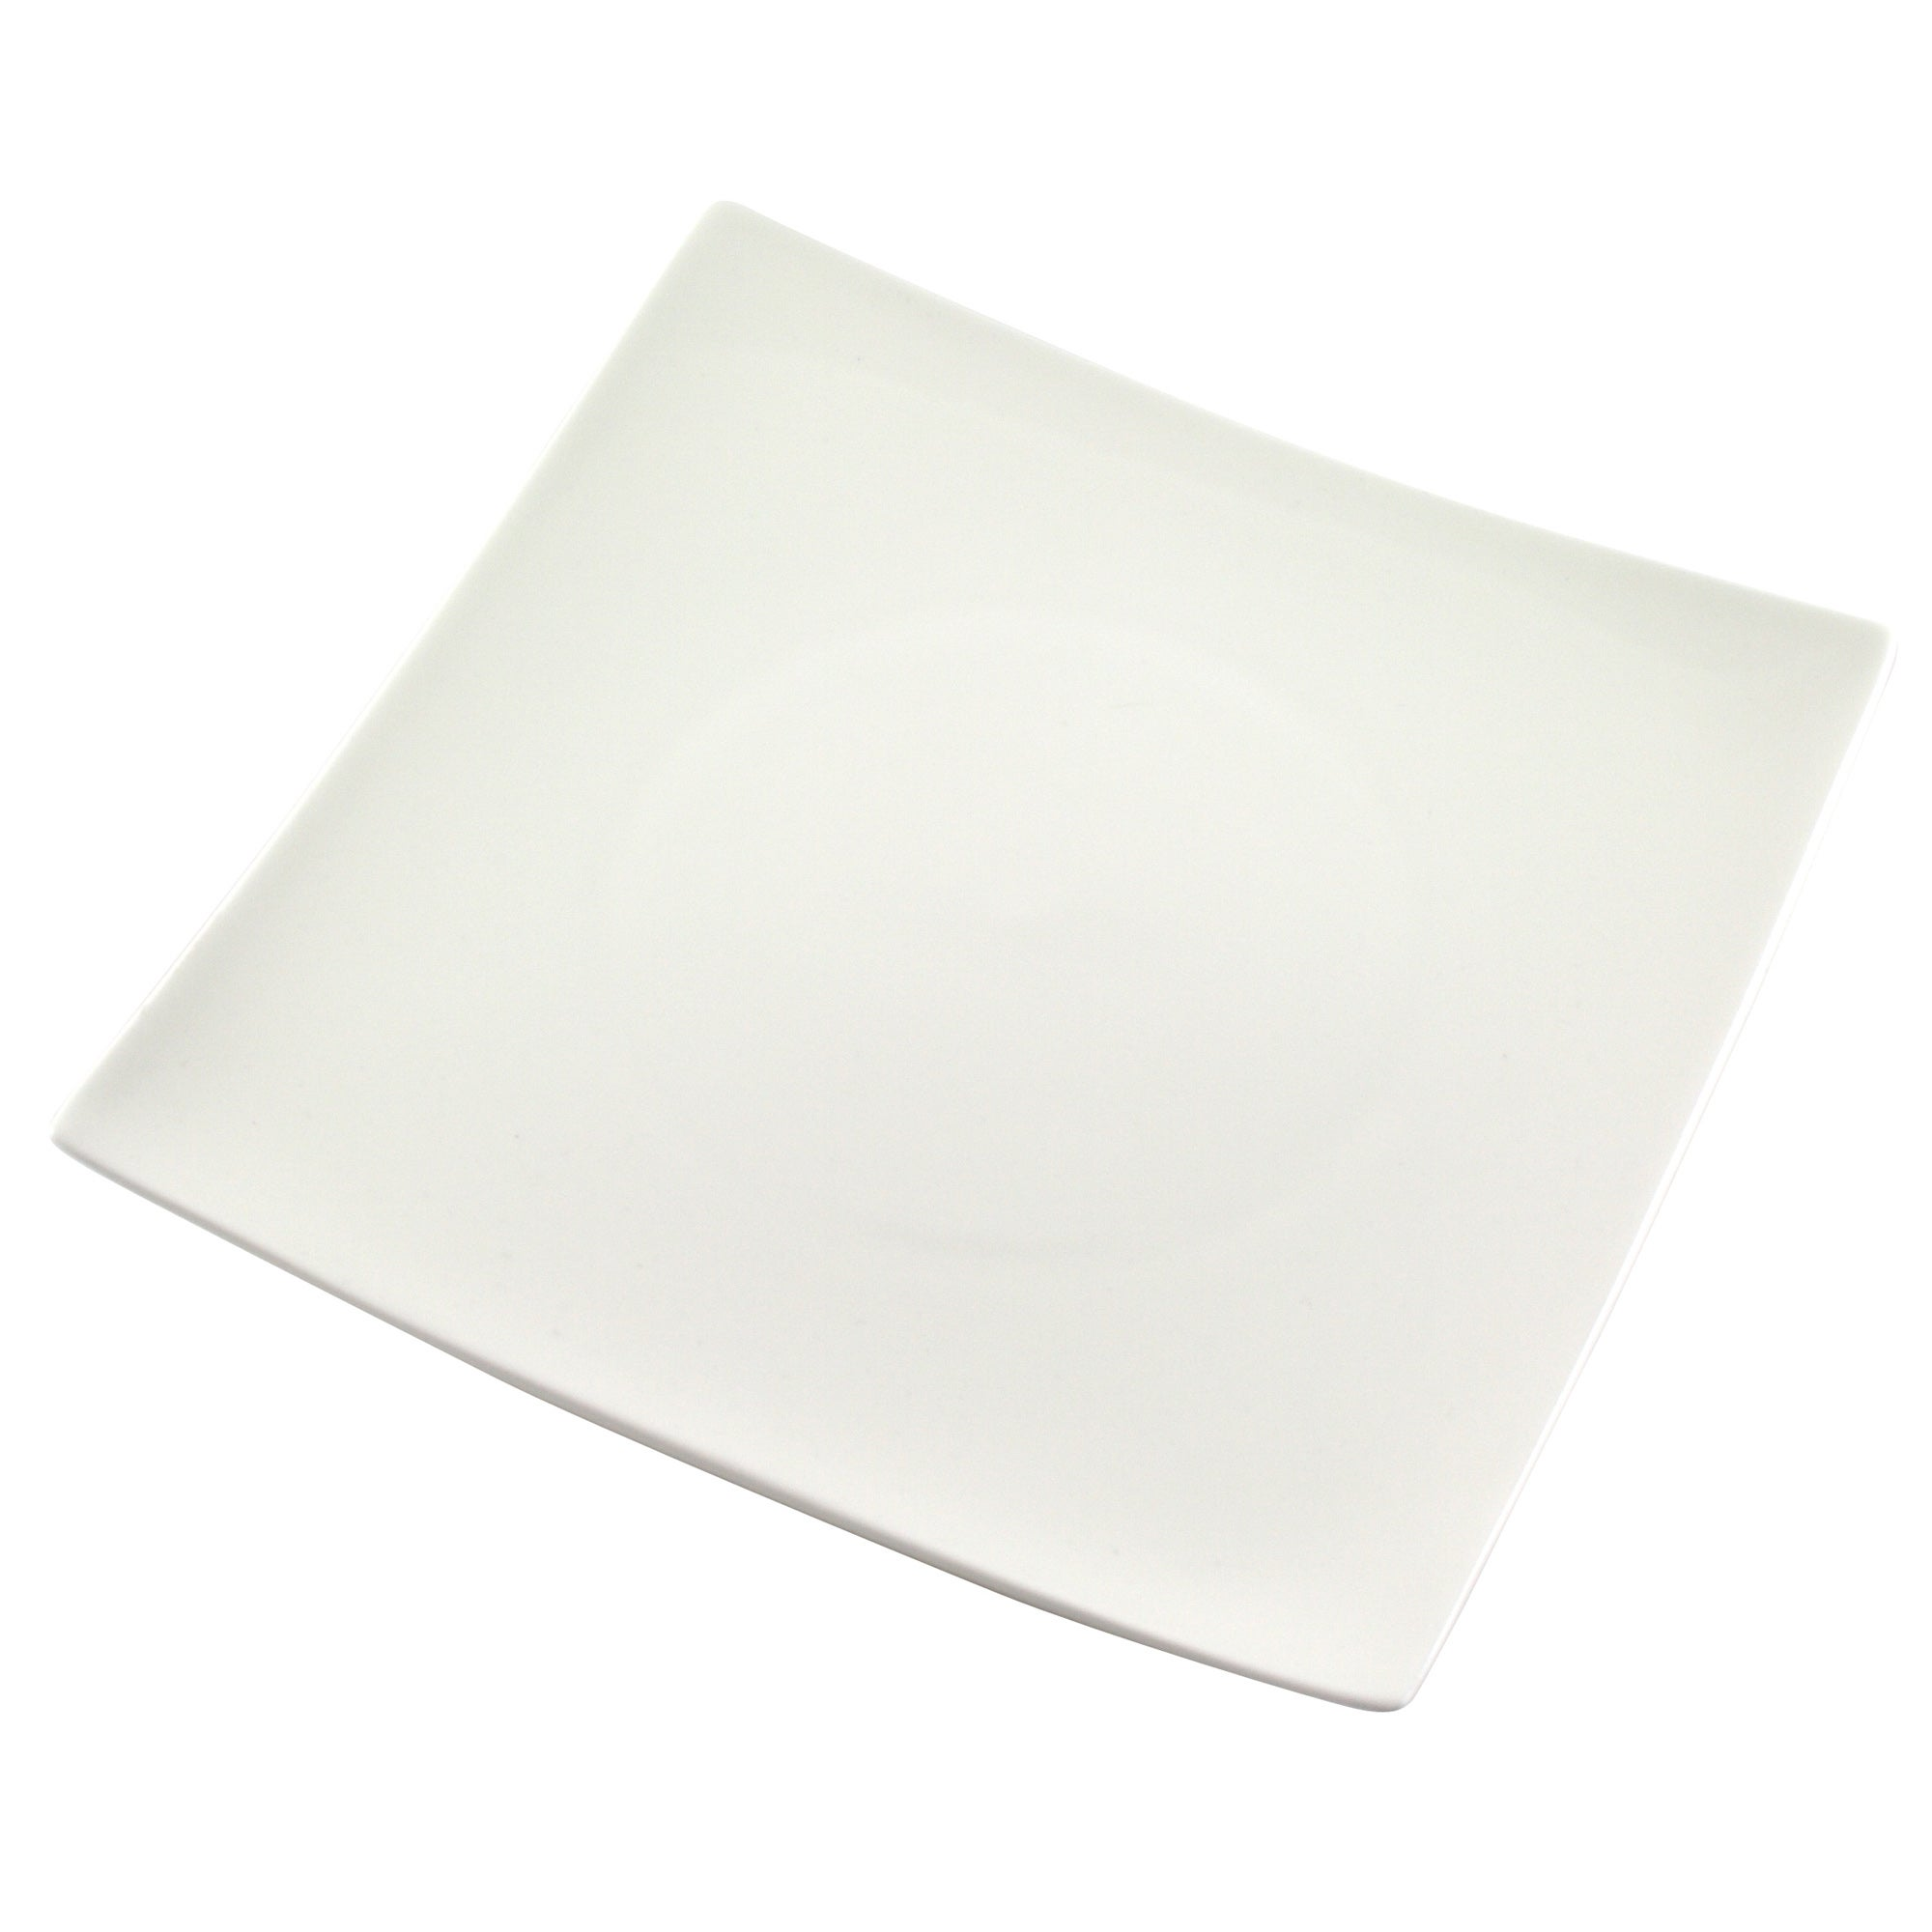 Dorma Knightsbridge Dinner Plate